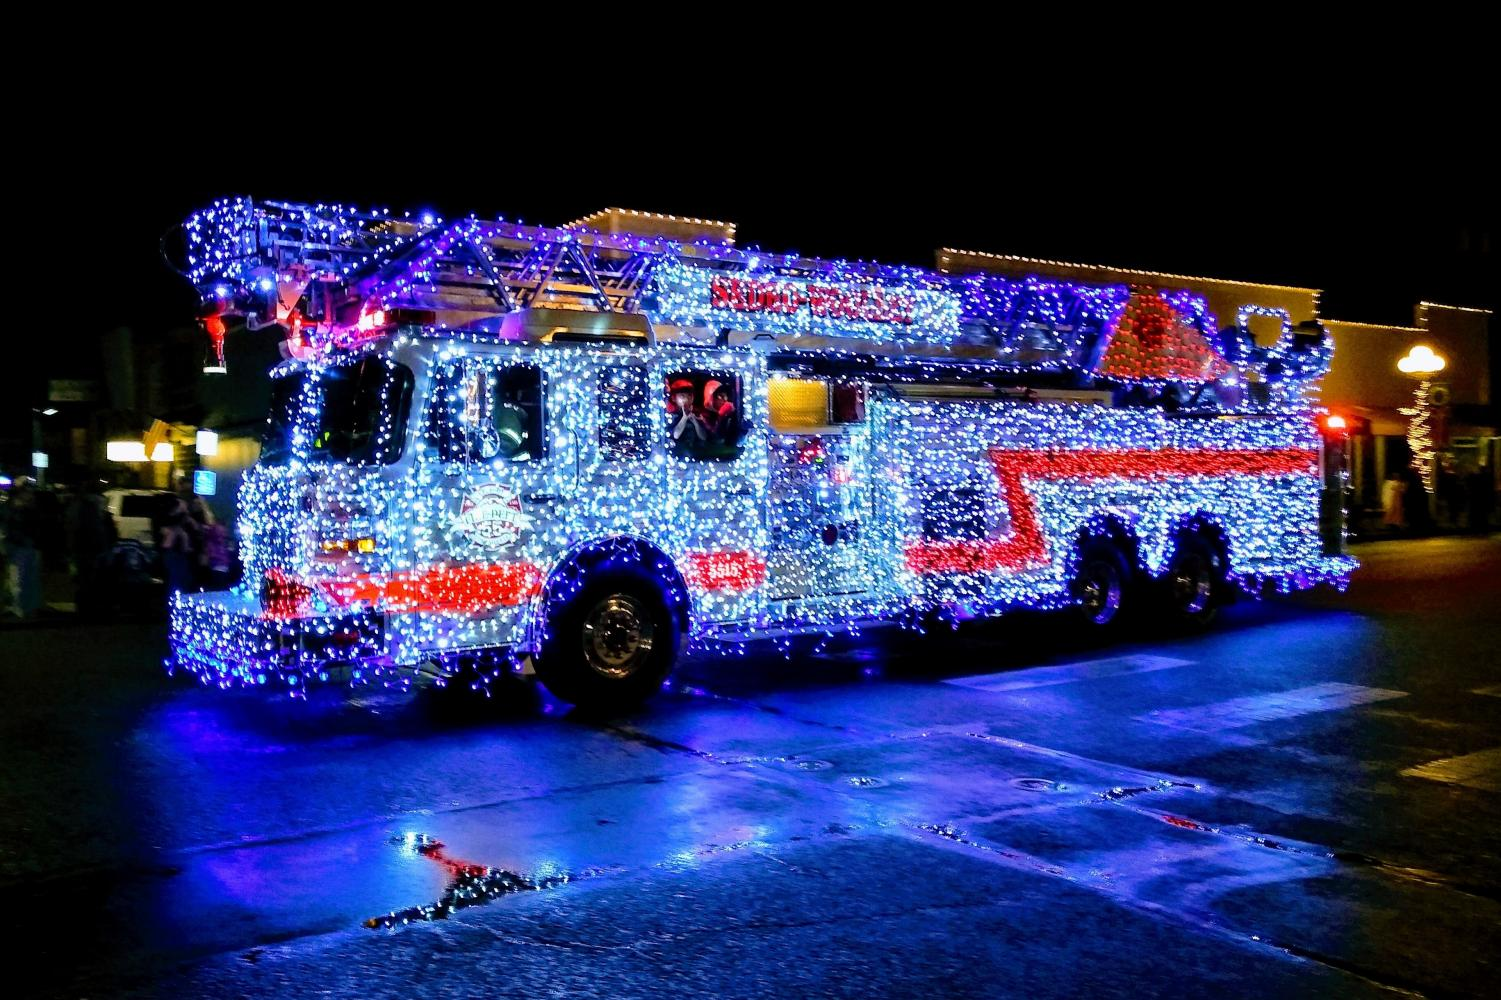 Sedro-Woolley's Fire Deptment once again wowed the crowds with their truck, which was completely covered in lights. Photo by Kaitlyn Loehr.